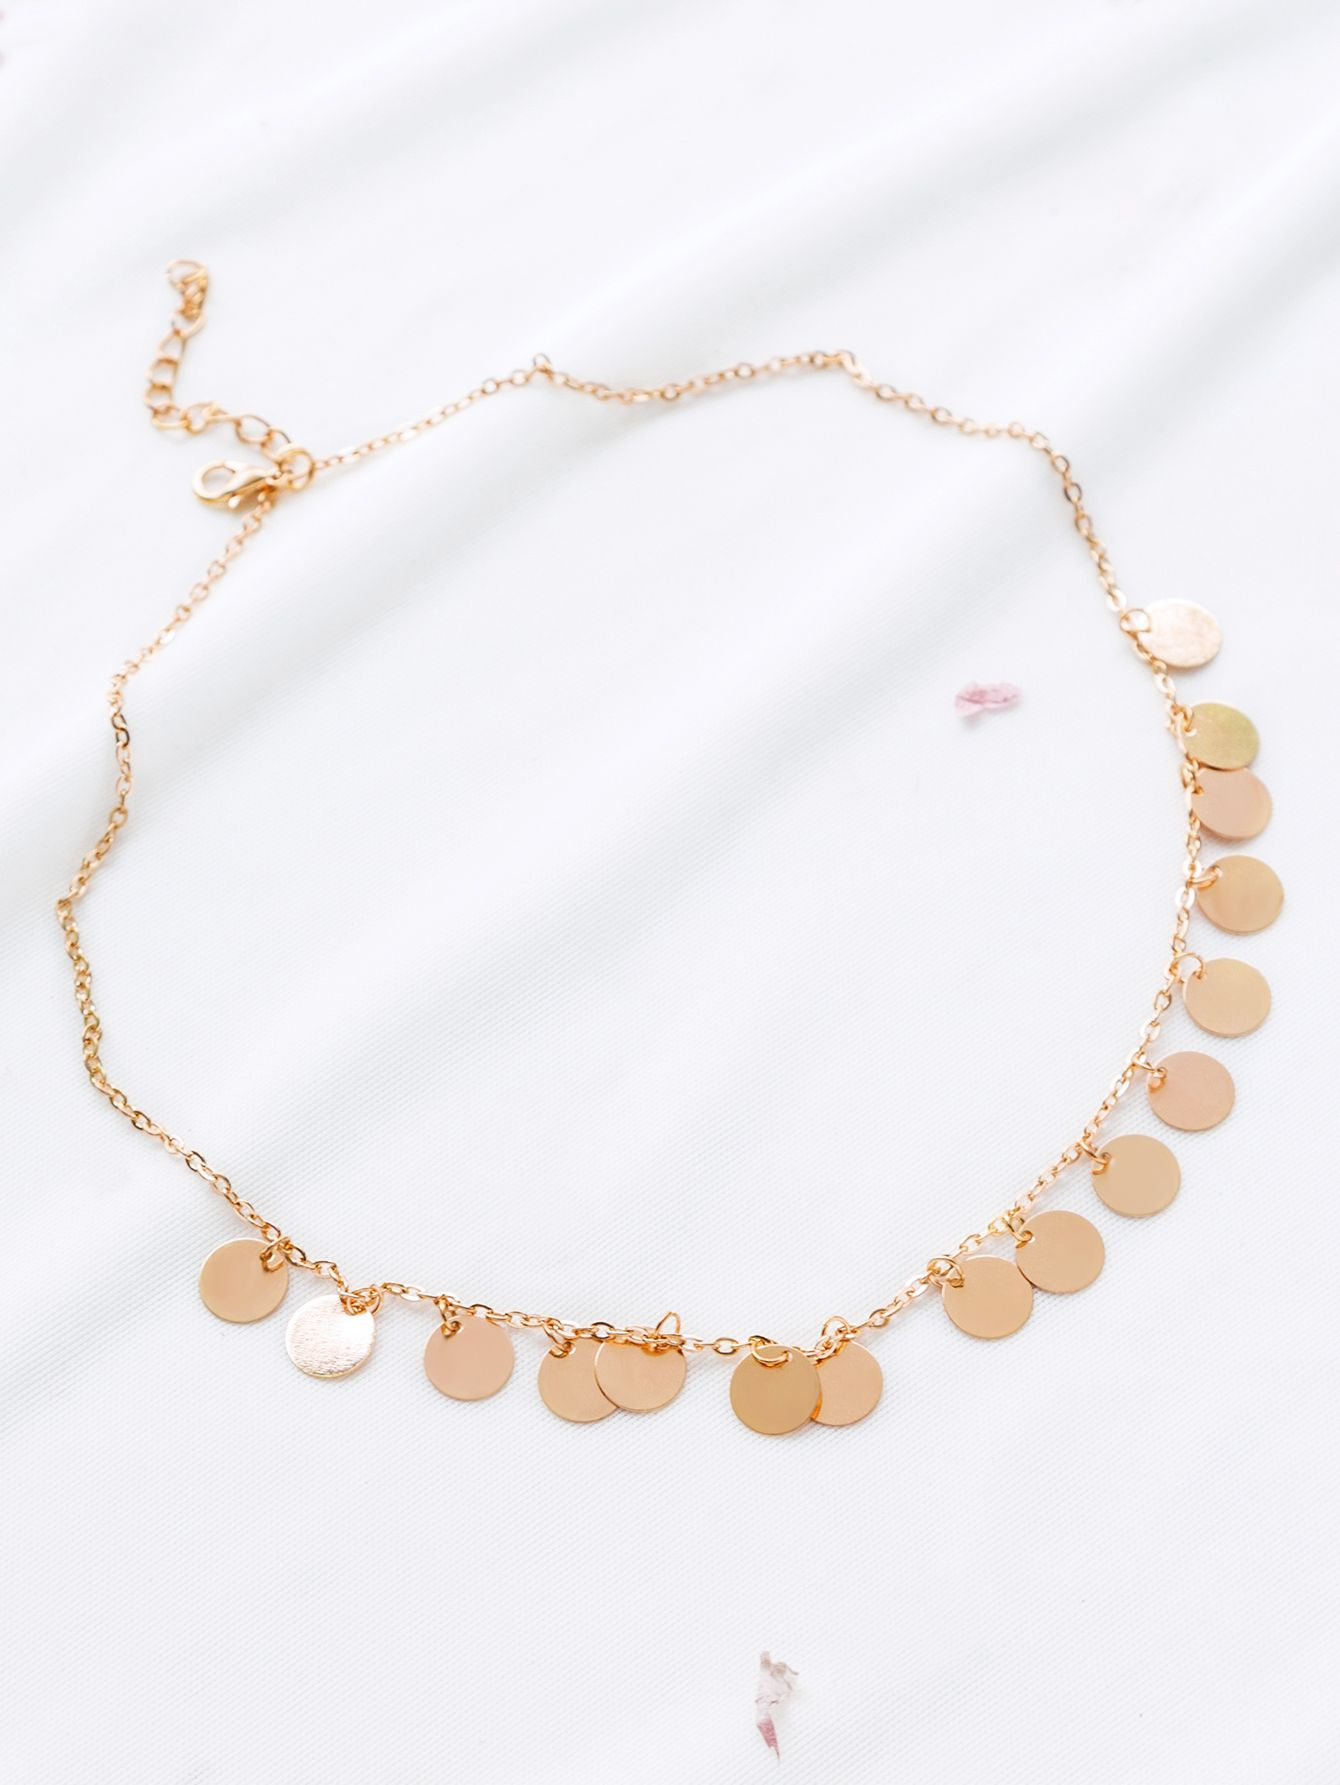 df0d440925 Shop Gold Coin Fringe Statement Necklace online. SheIn offers Gold Coin  Fringe Statement Necklace & more to fit your fashionable needs.